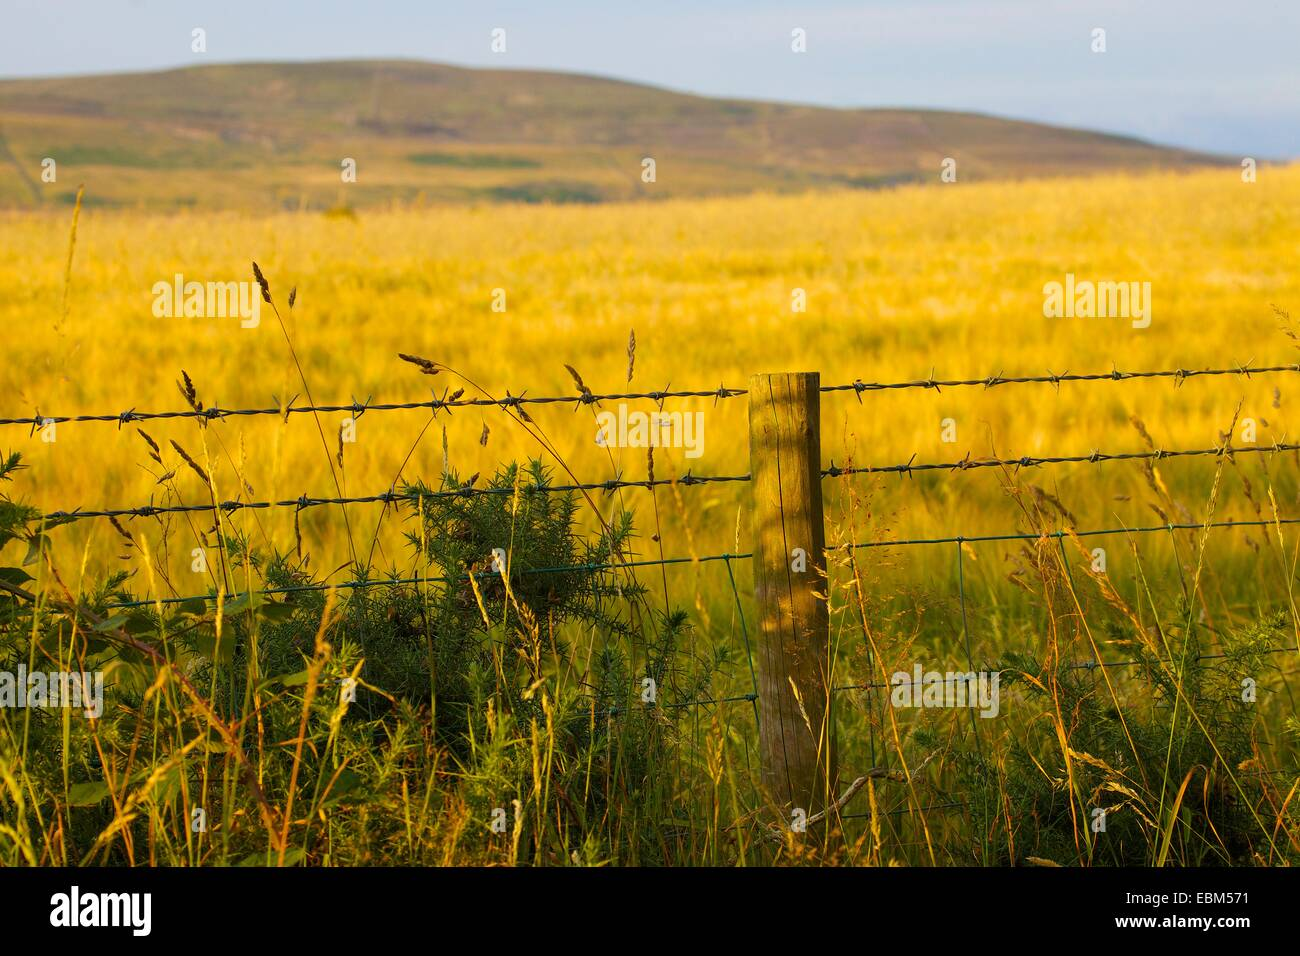 Barbed wire fence in front of barley field. Eden Valley, Cumbria, England, UK. Stock Photo